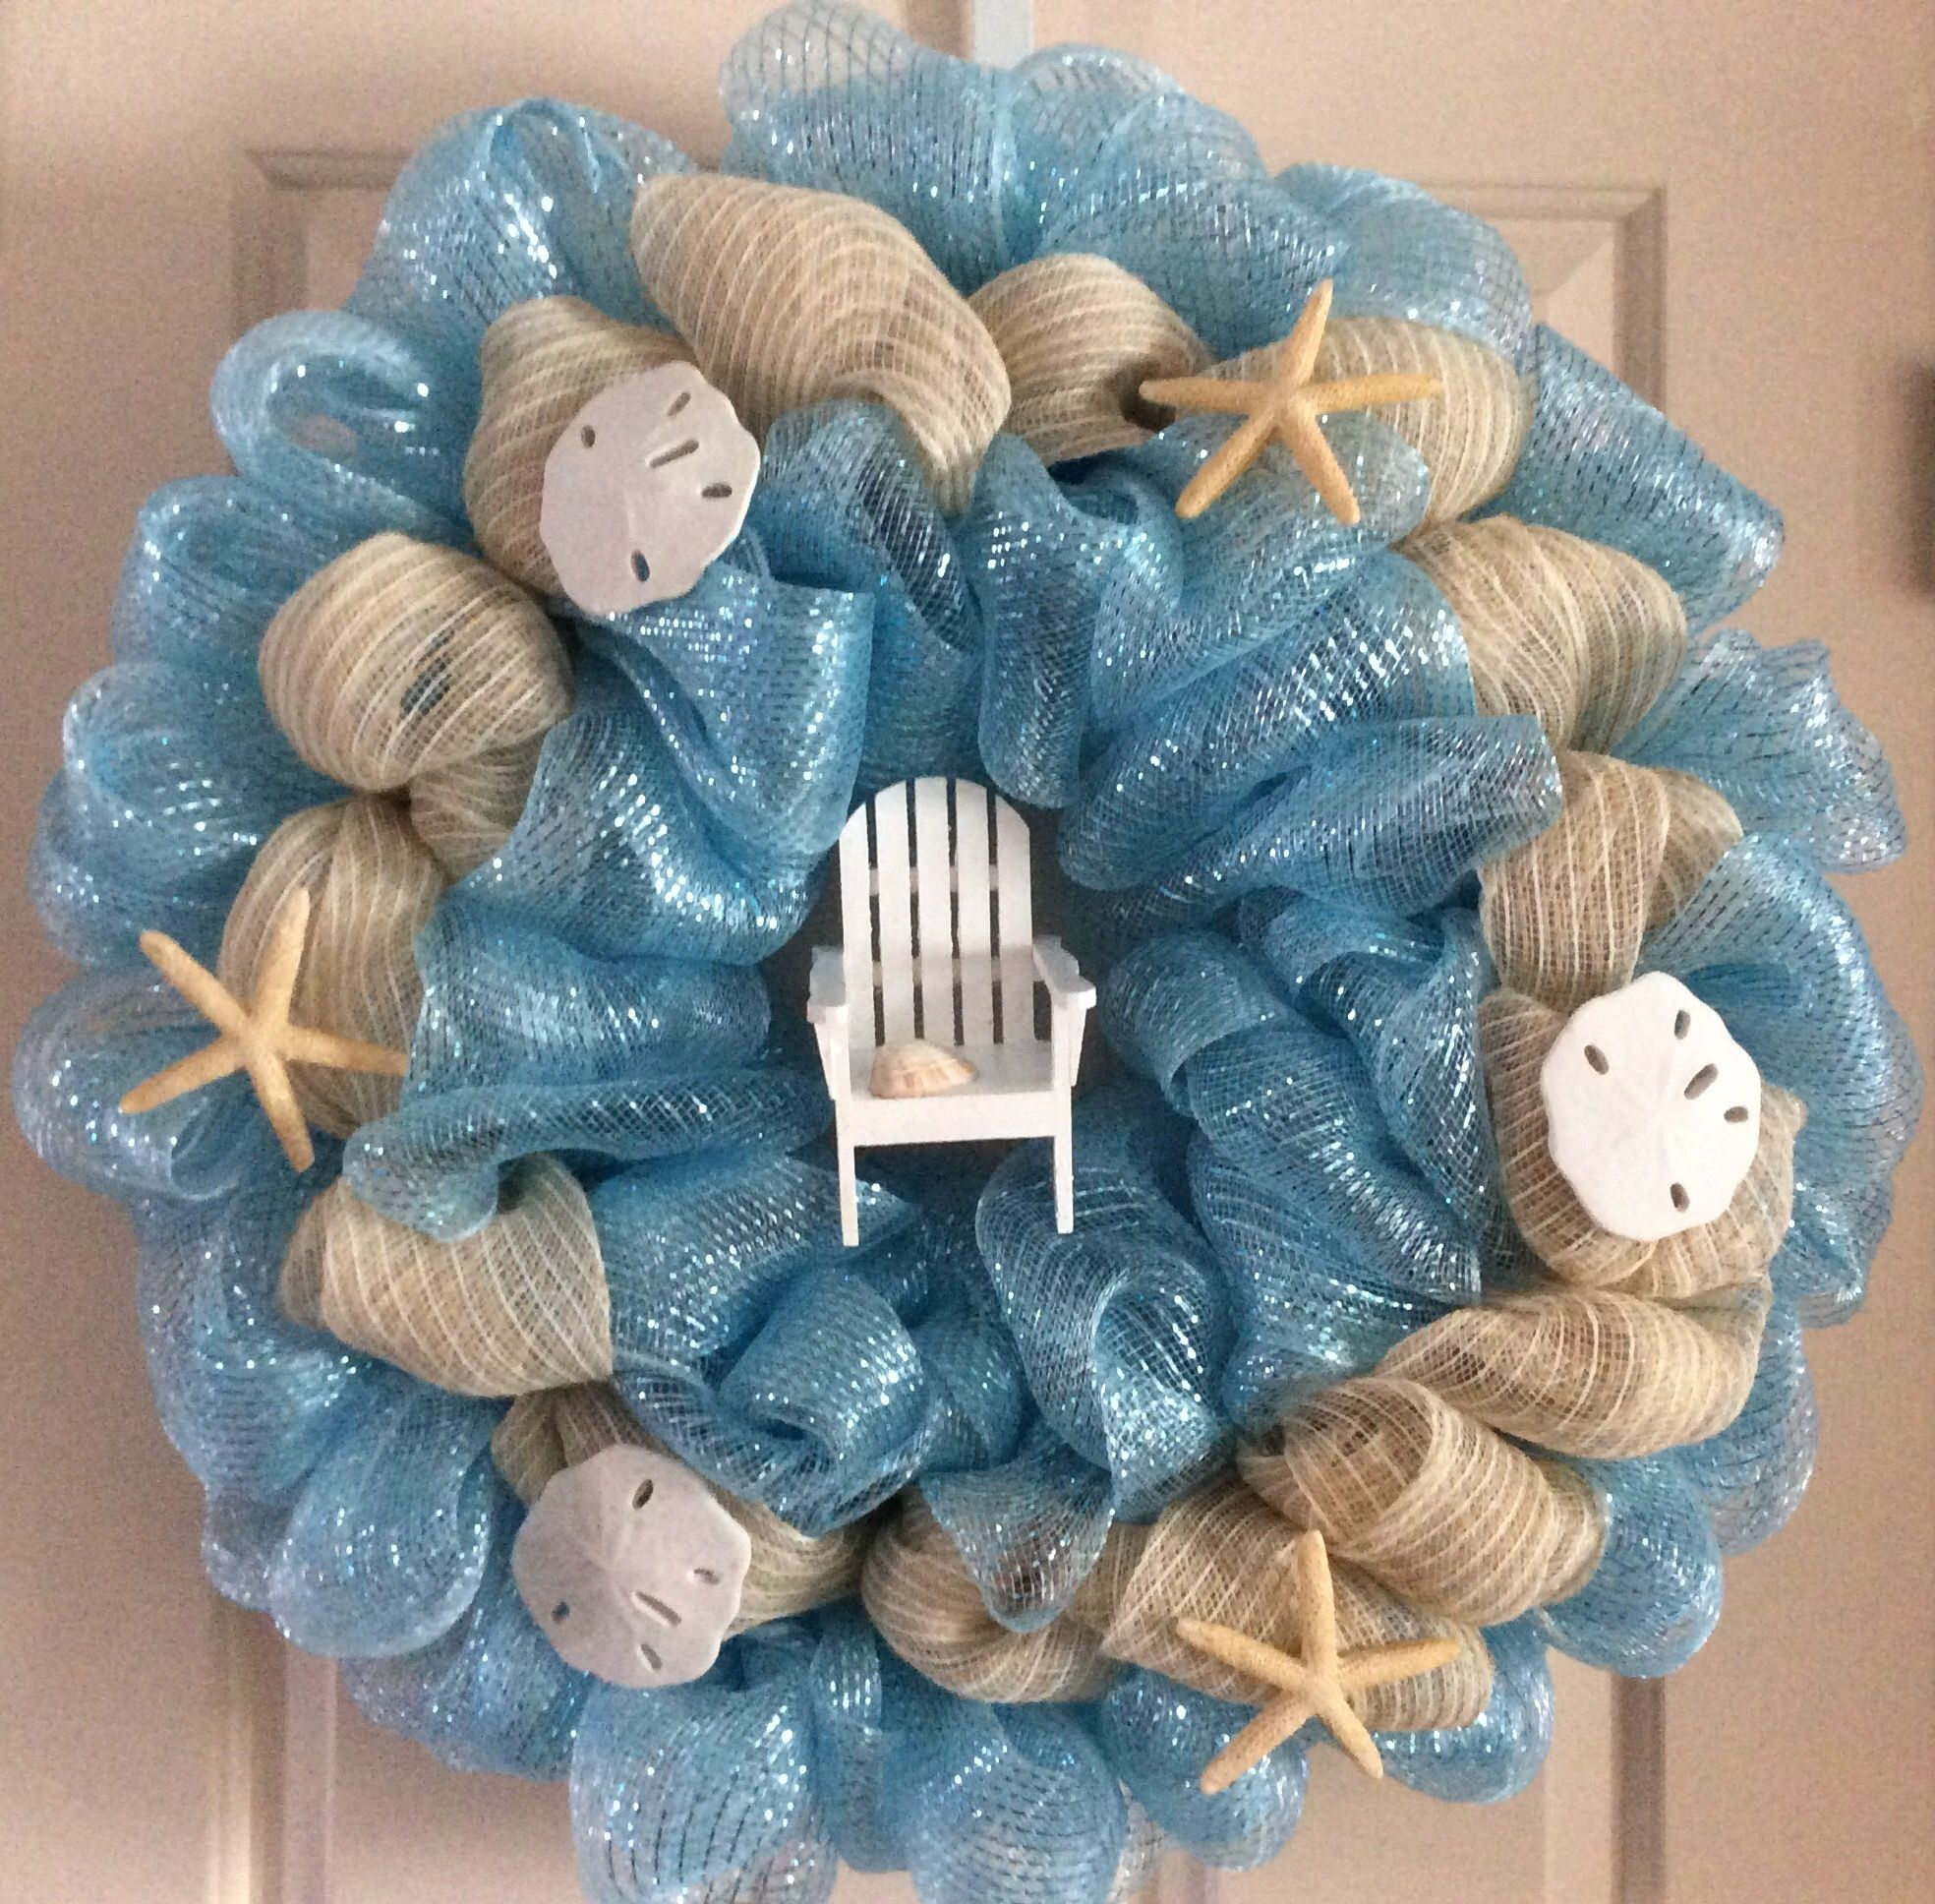 nice summery wreath found the little wooden adirondack chair for 1